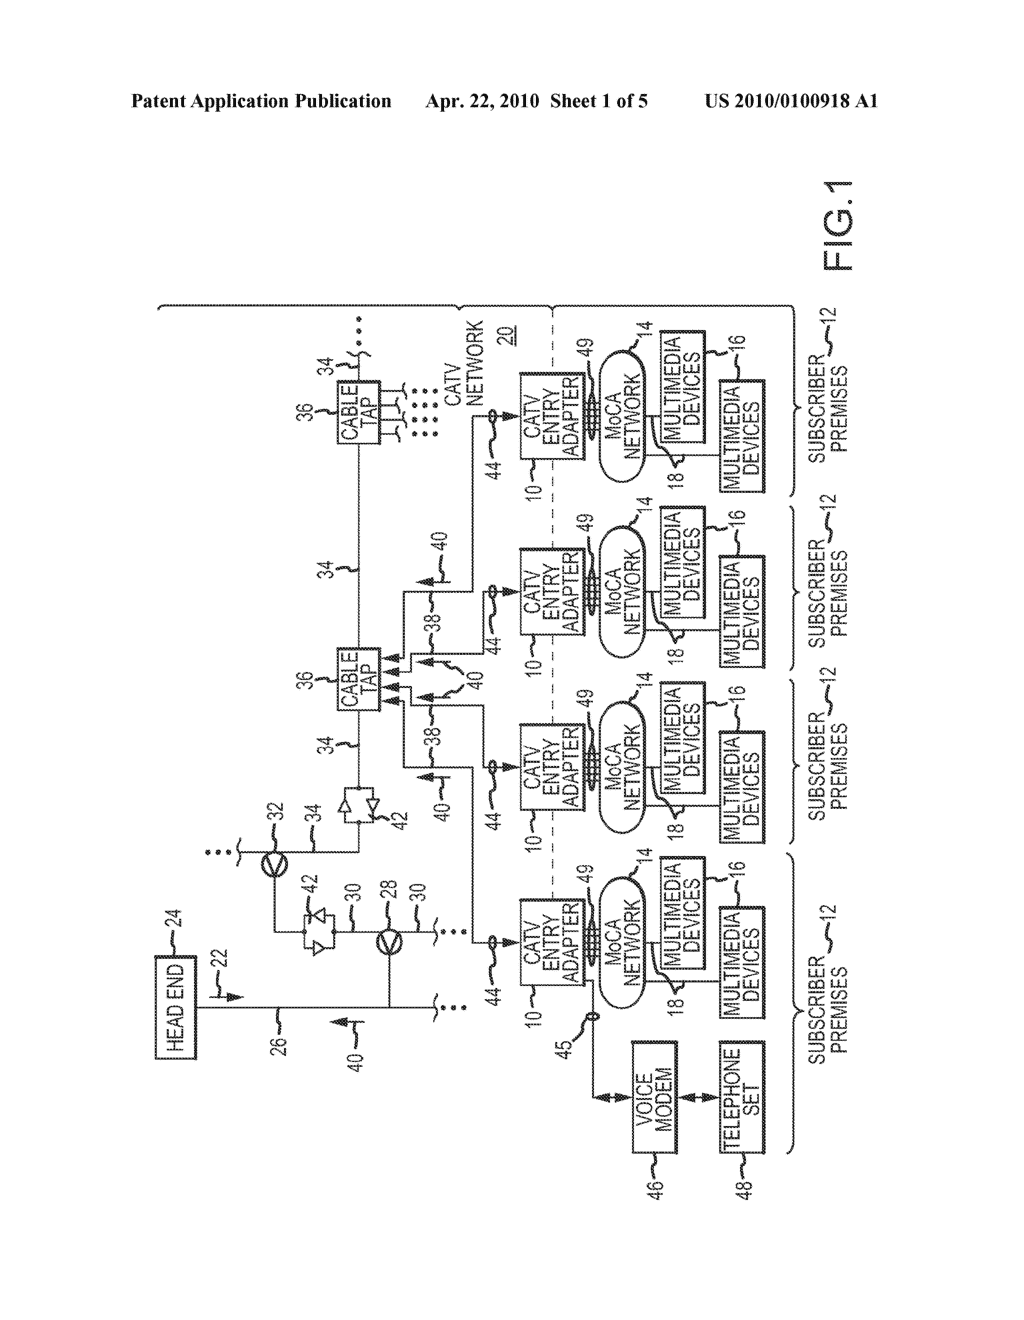 Moca Network Adapter Diagram Electrical Wiring Diagrams Tivo Multi Port Entry Hub And Method For Interfacing A Catv